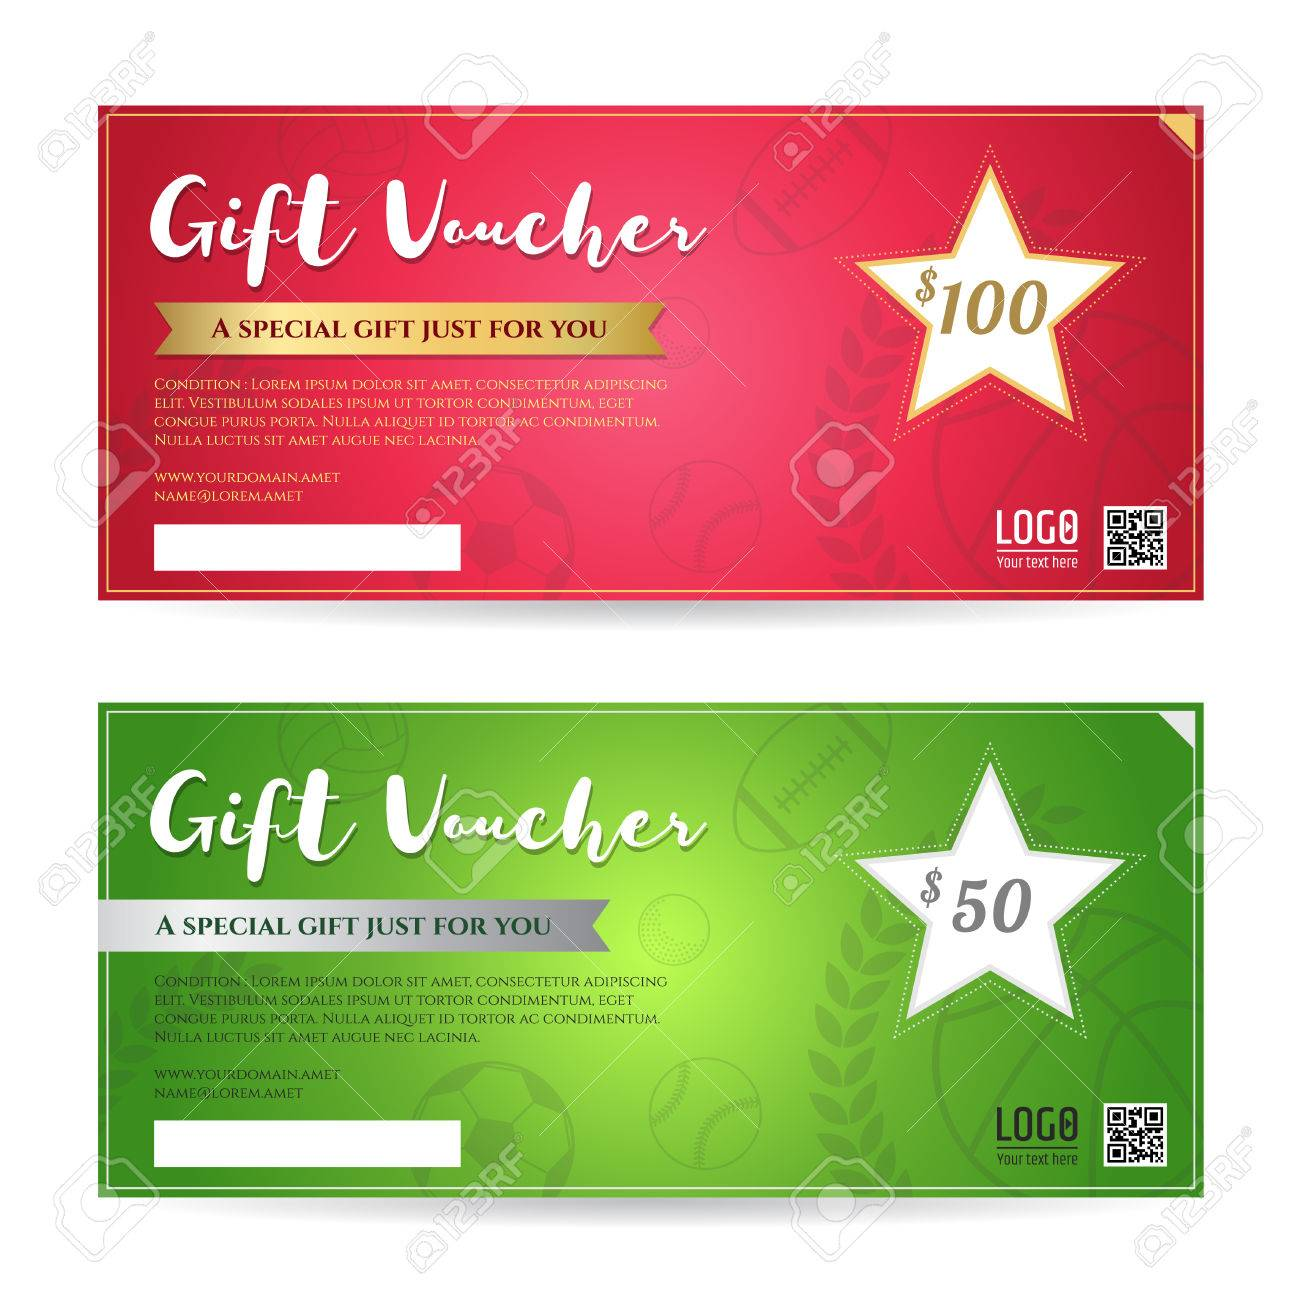 Gift Voucher Or Gift Certificate Template In Red And Green - 100 gift certificate template